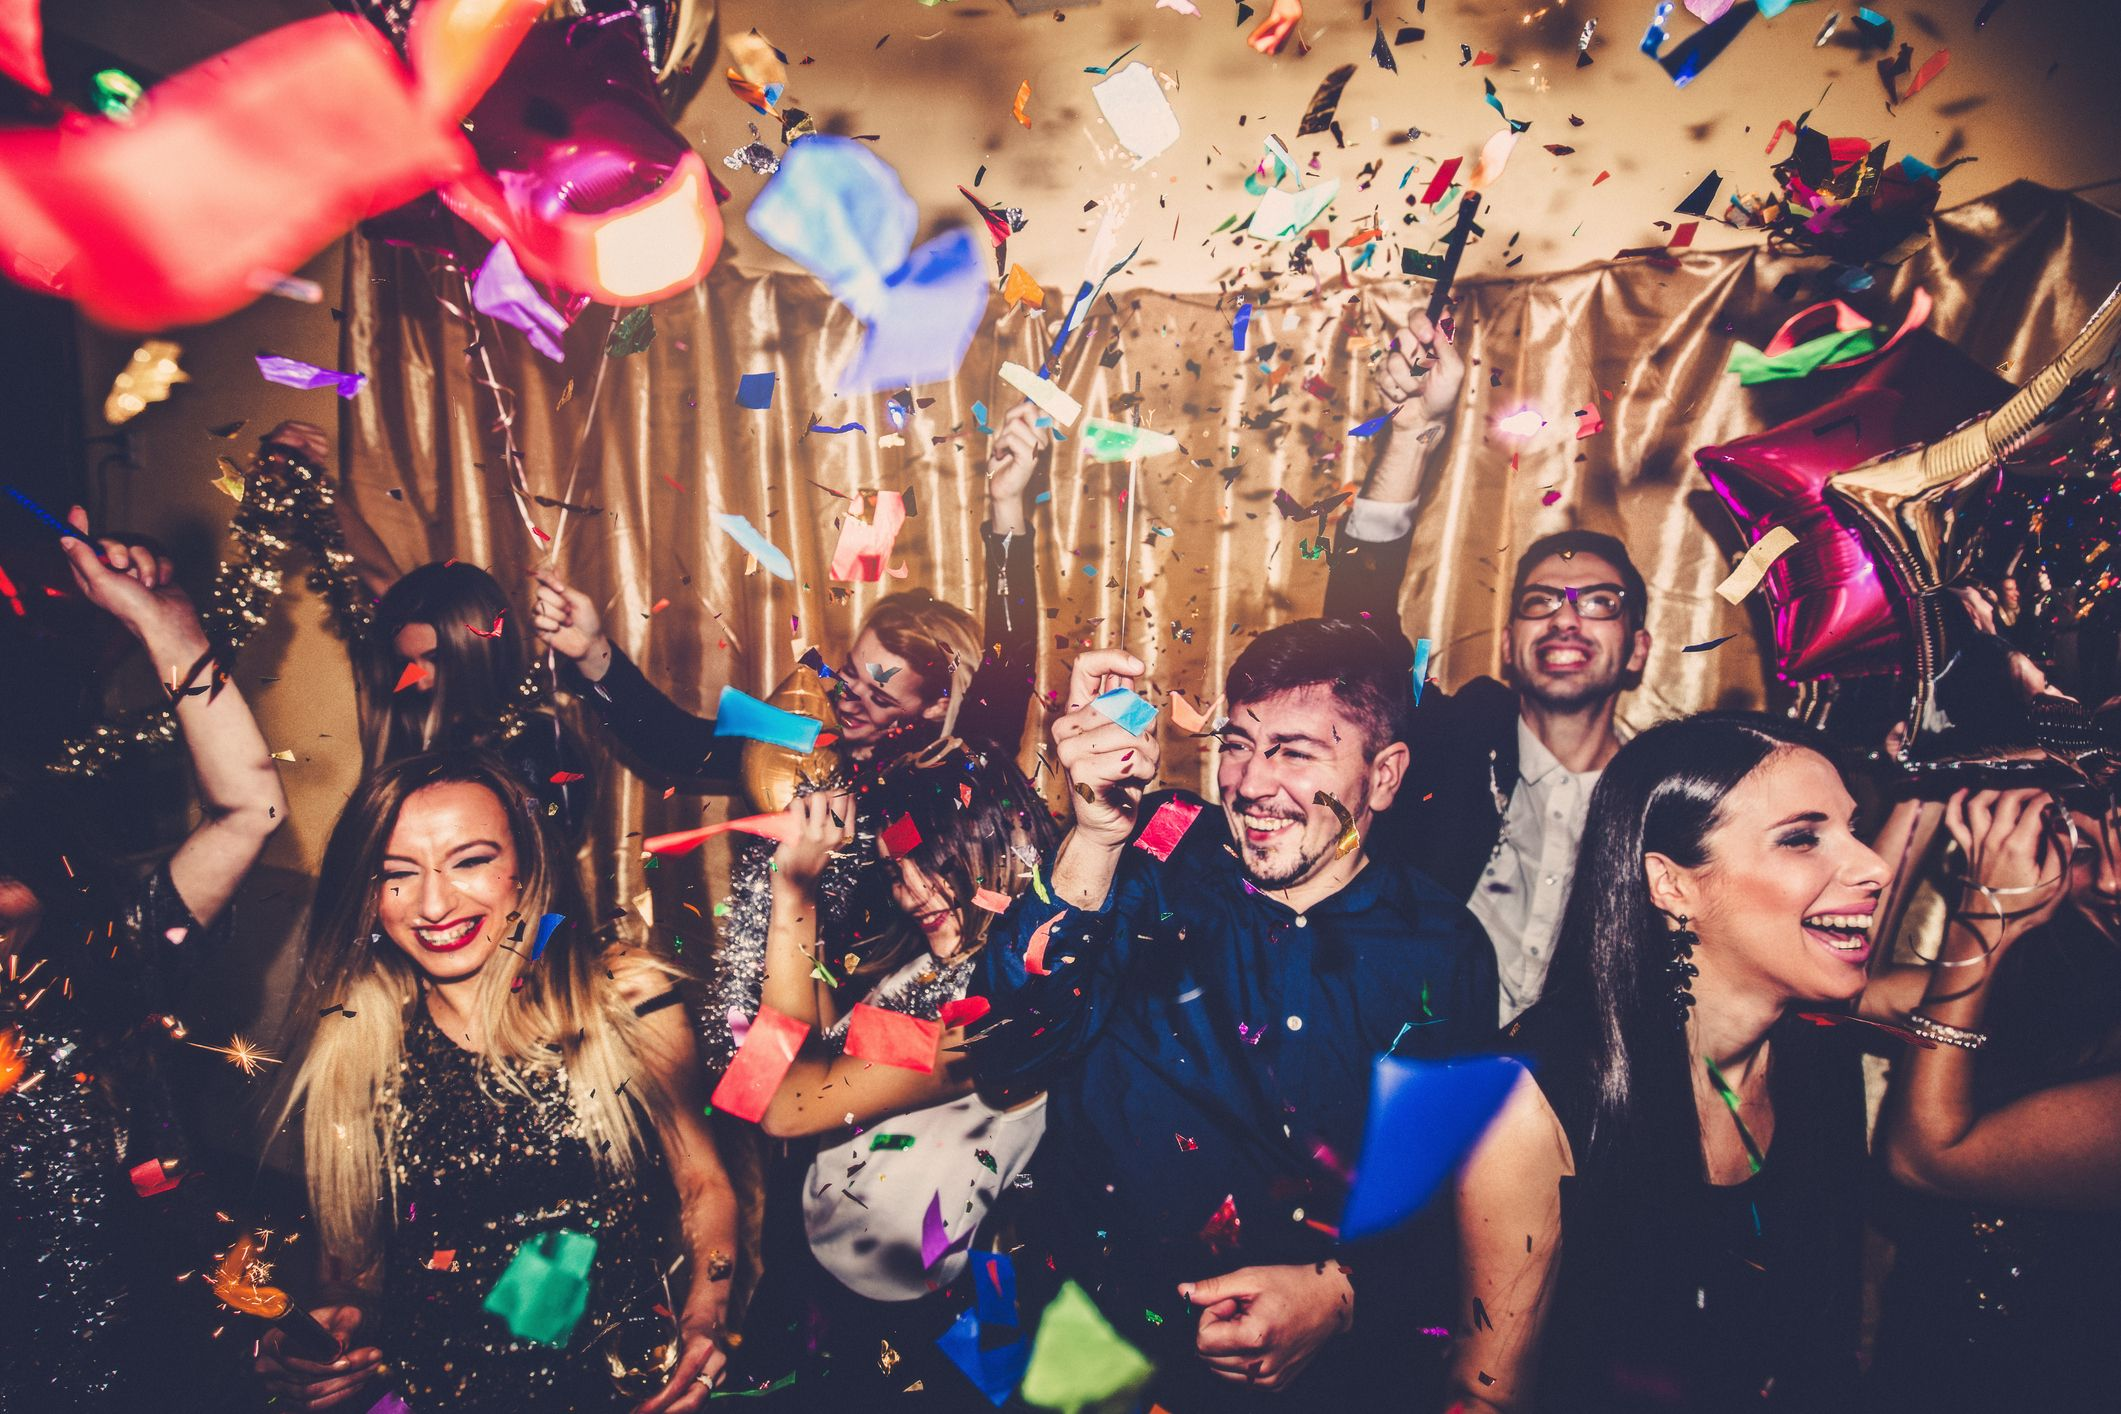 10 Tips for a Killer New Year's Eve Party